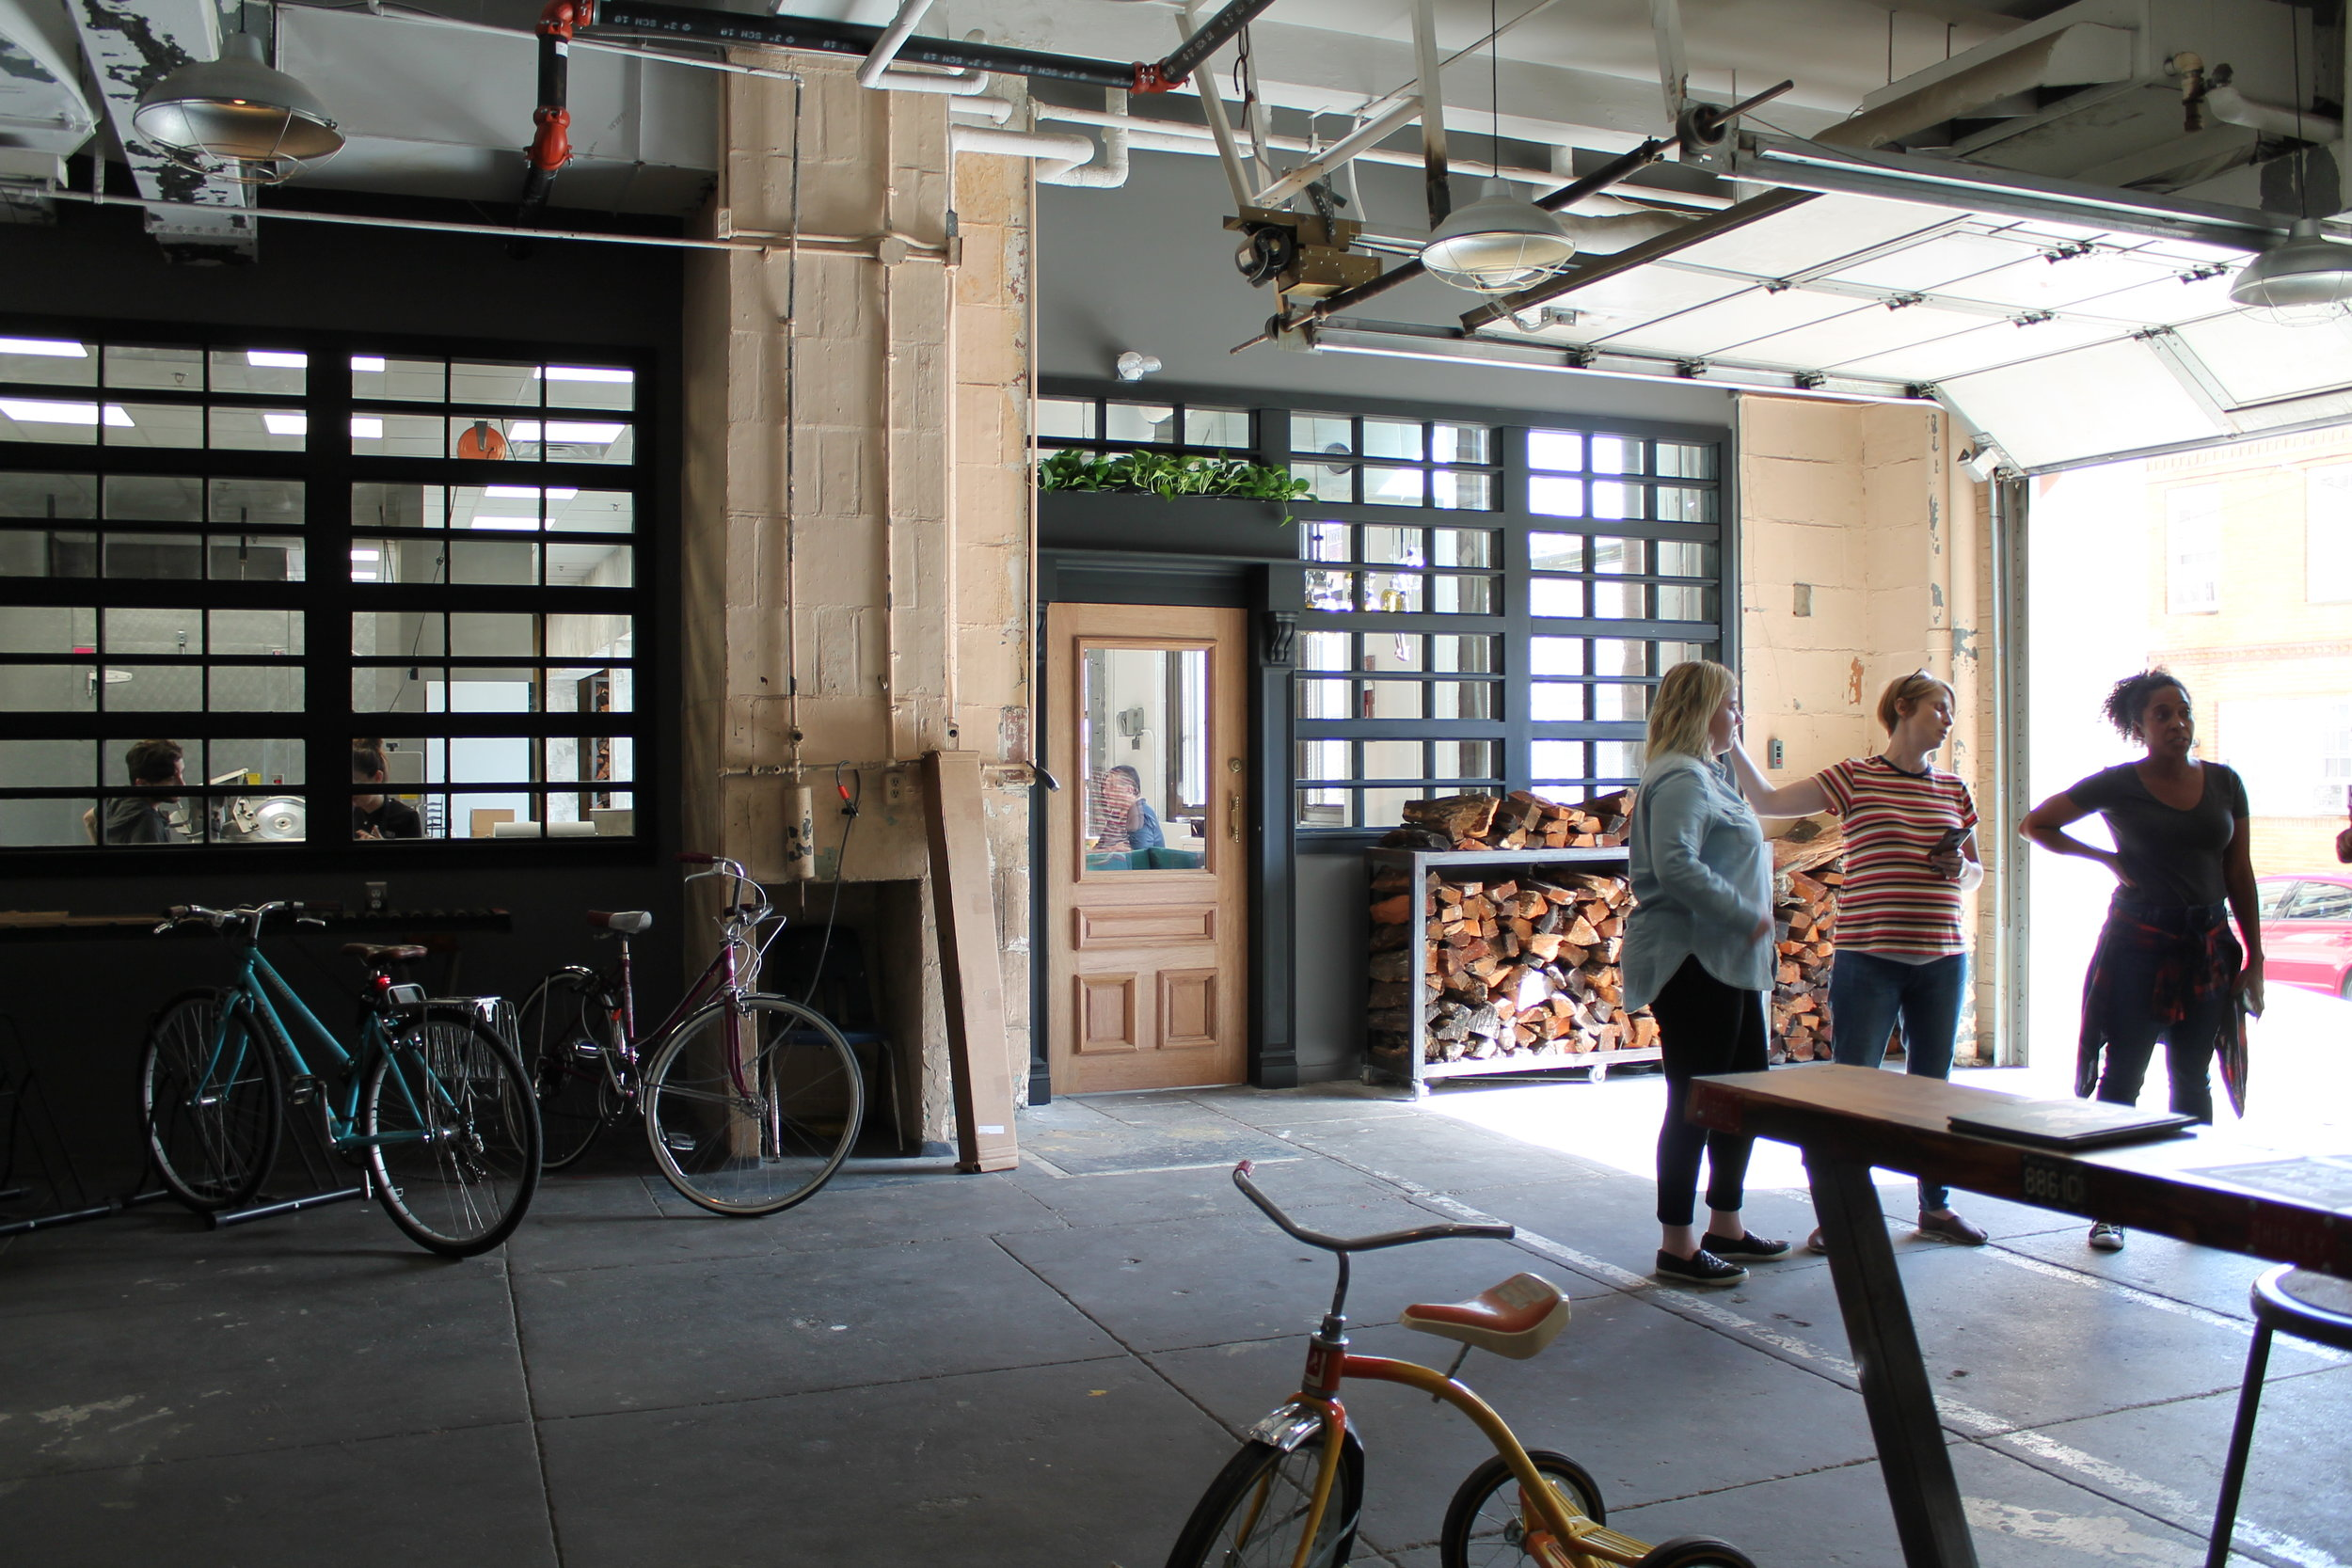 the main entrance from Dudley Street; the entrance is shared with a coffee shop and bike shop